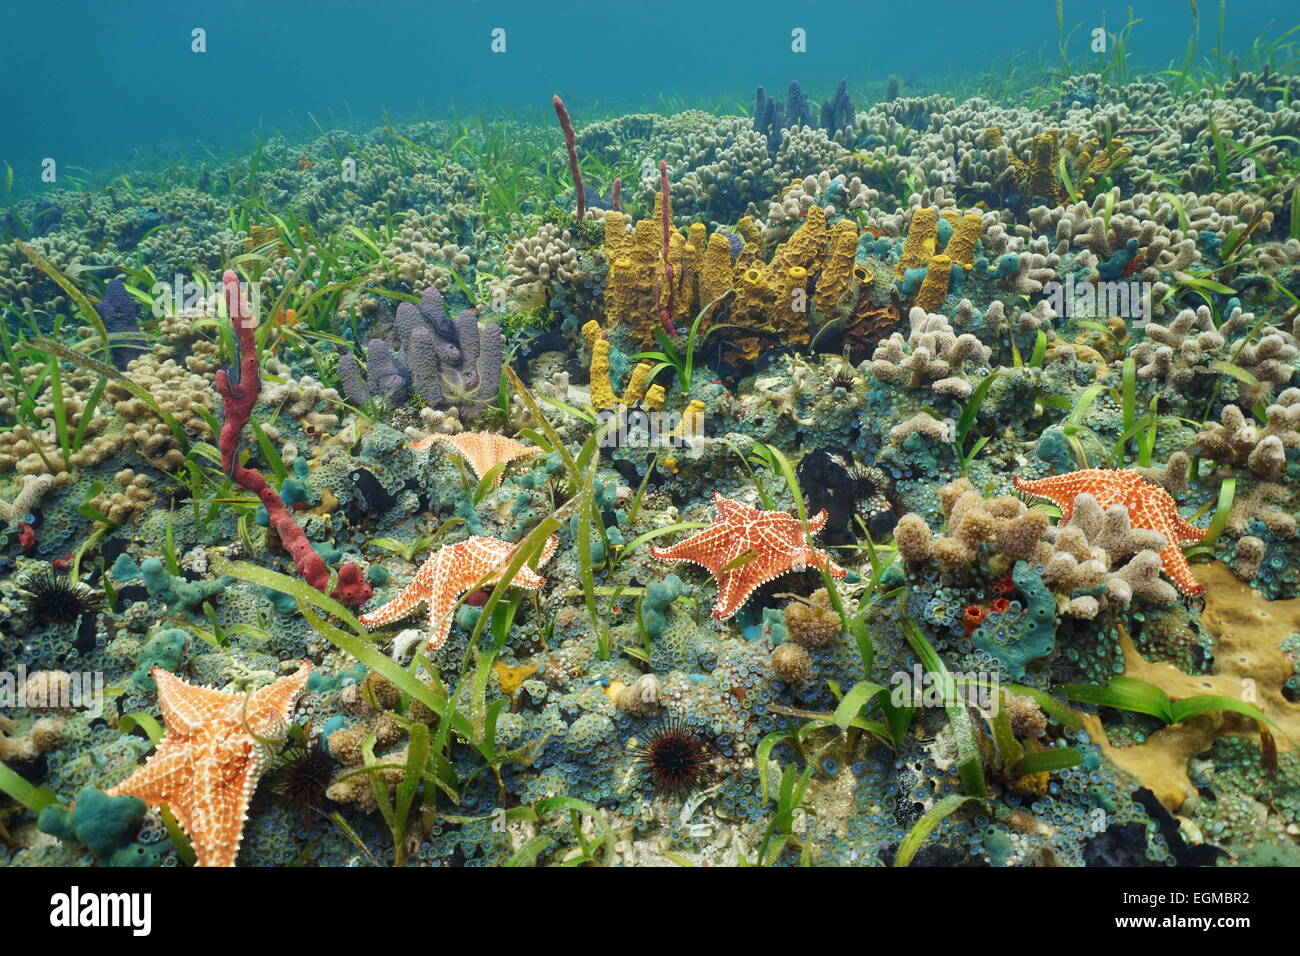 Colorful ocean floor with starfish and sea sponge in a Caribbean coral reef, natural scene - Stock Image